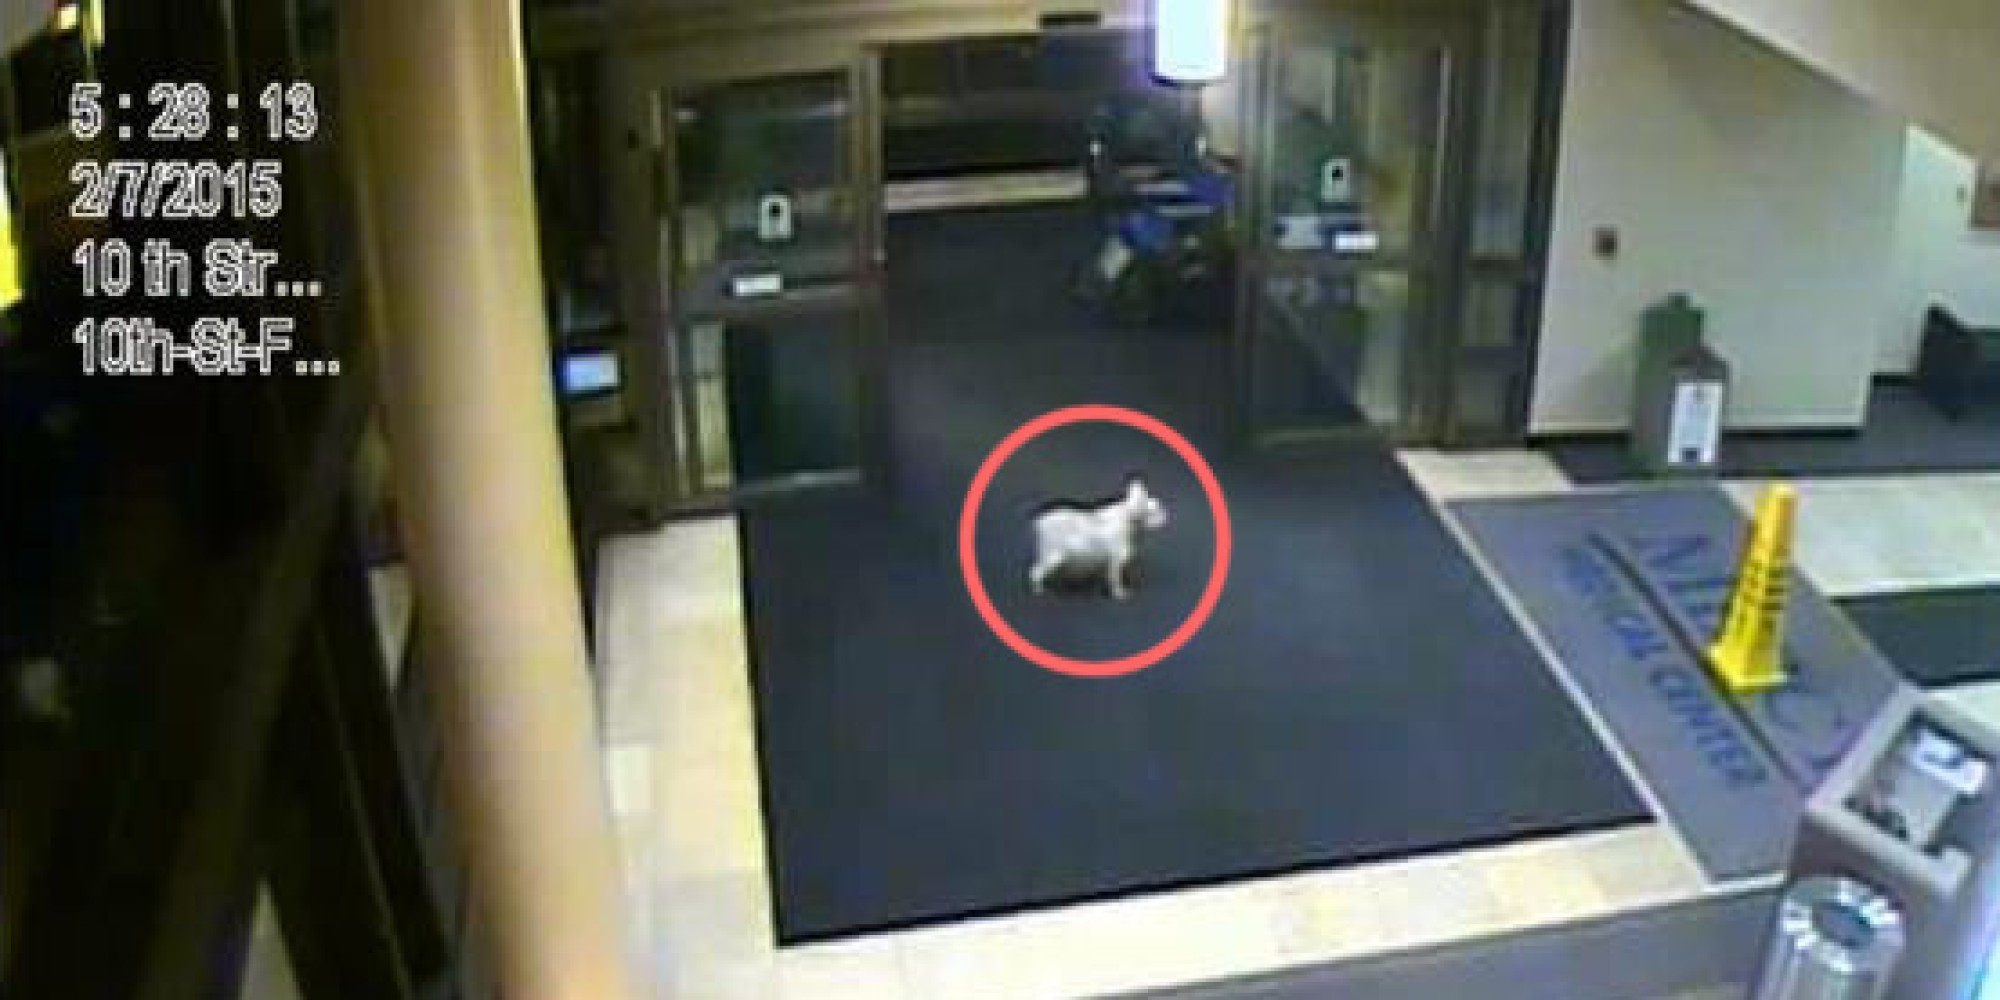 dog-escapes-from-home-sneaks-into-hospital